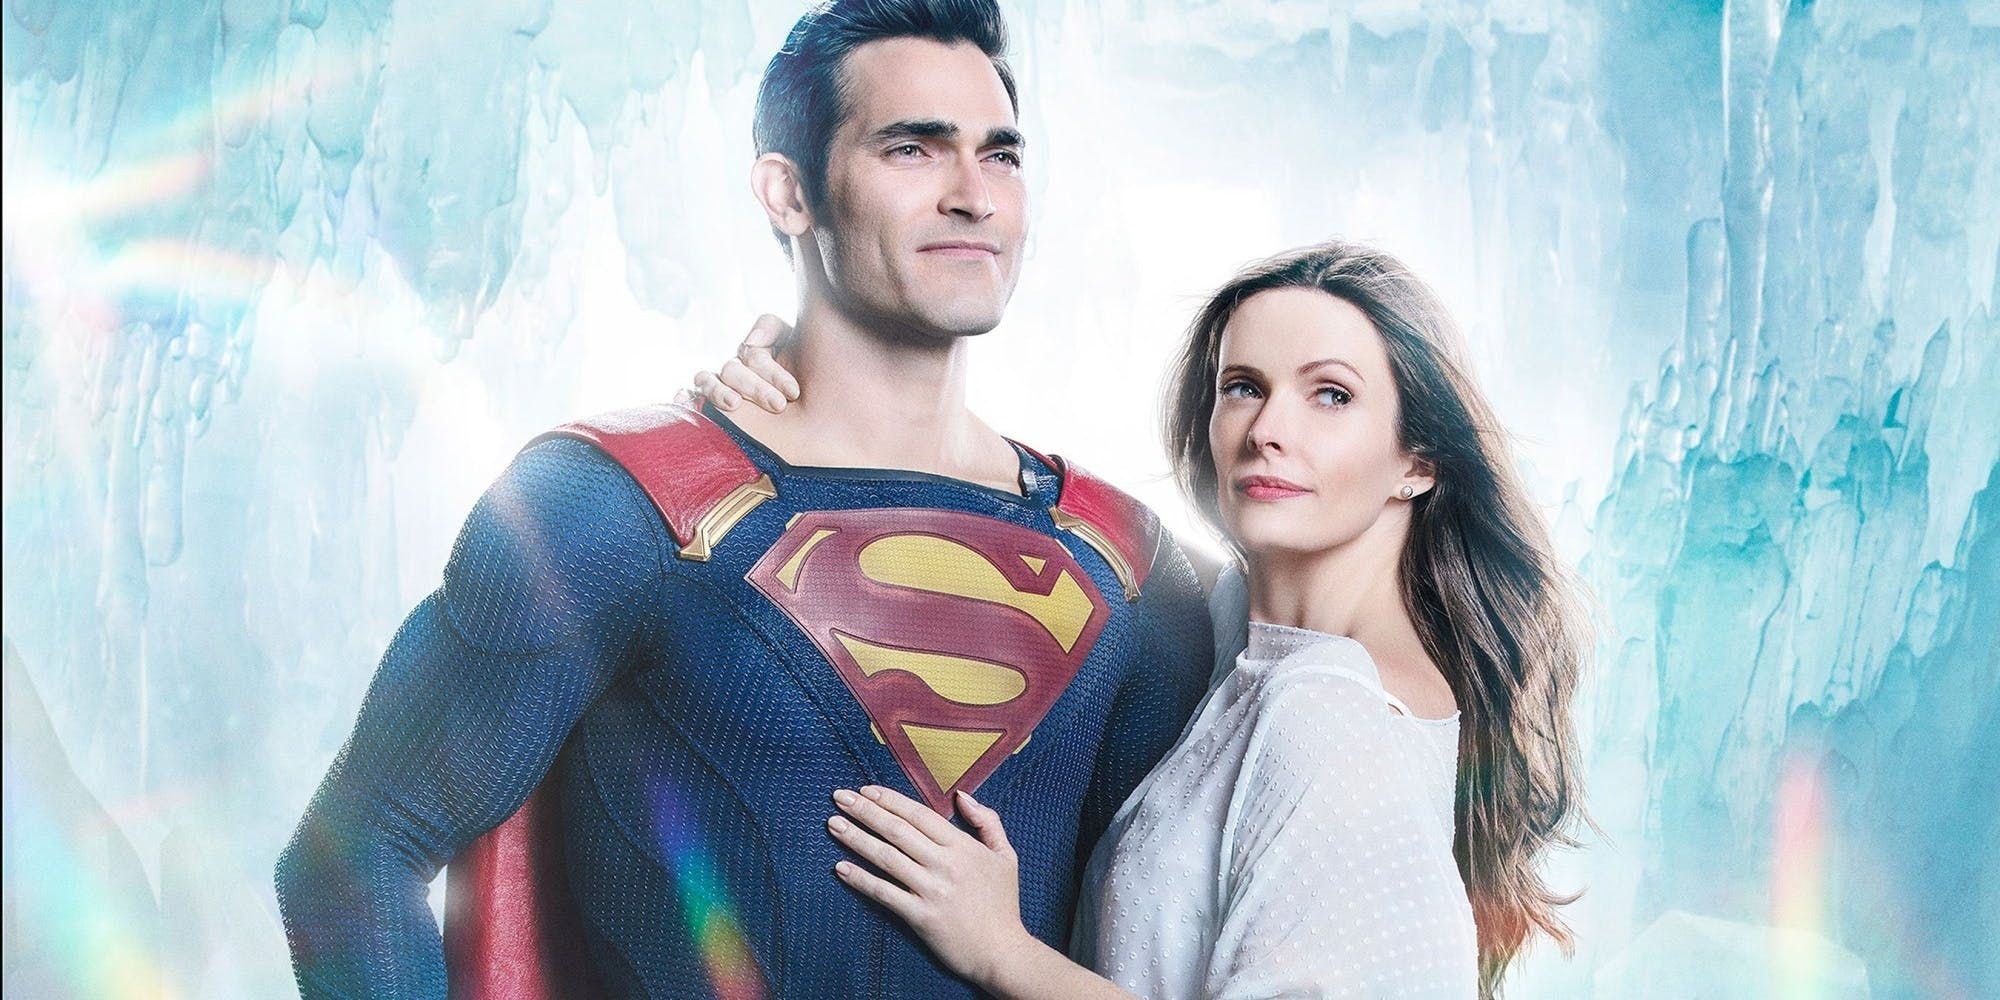 Elseworlds Crossover Episode Synopses Released By The CW